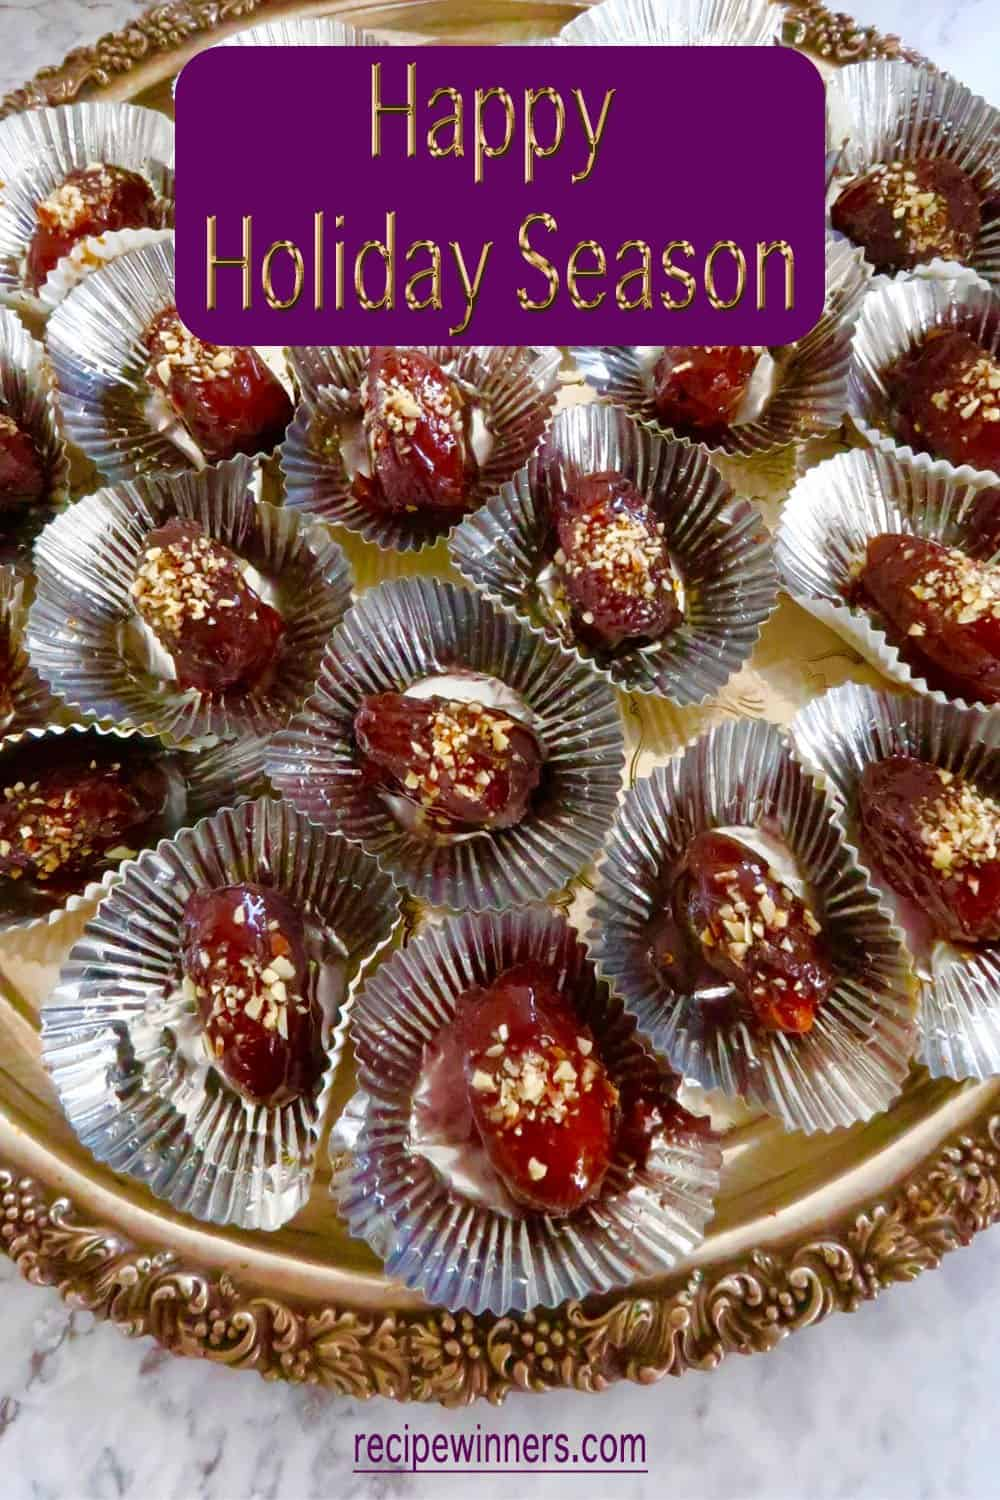 Chocolate and almond toffeed dates served on a silver tray make the perfect finish to the holiday season finger food list